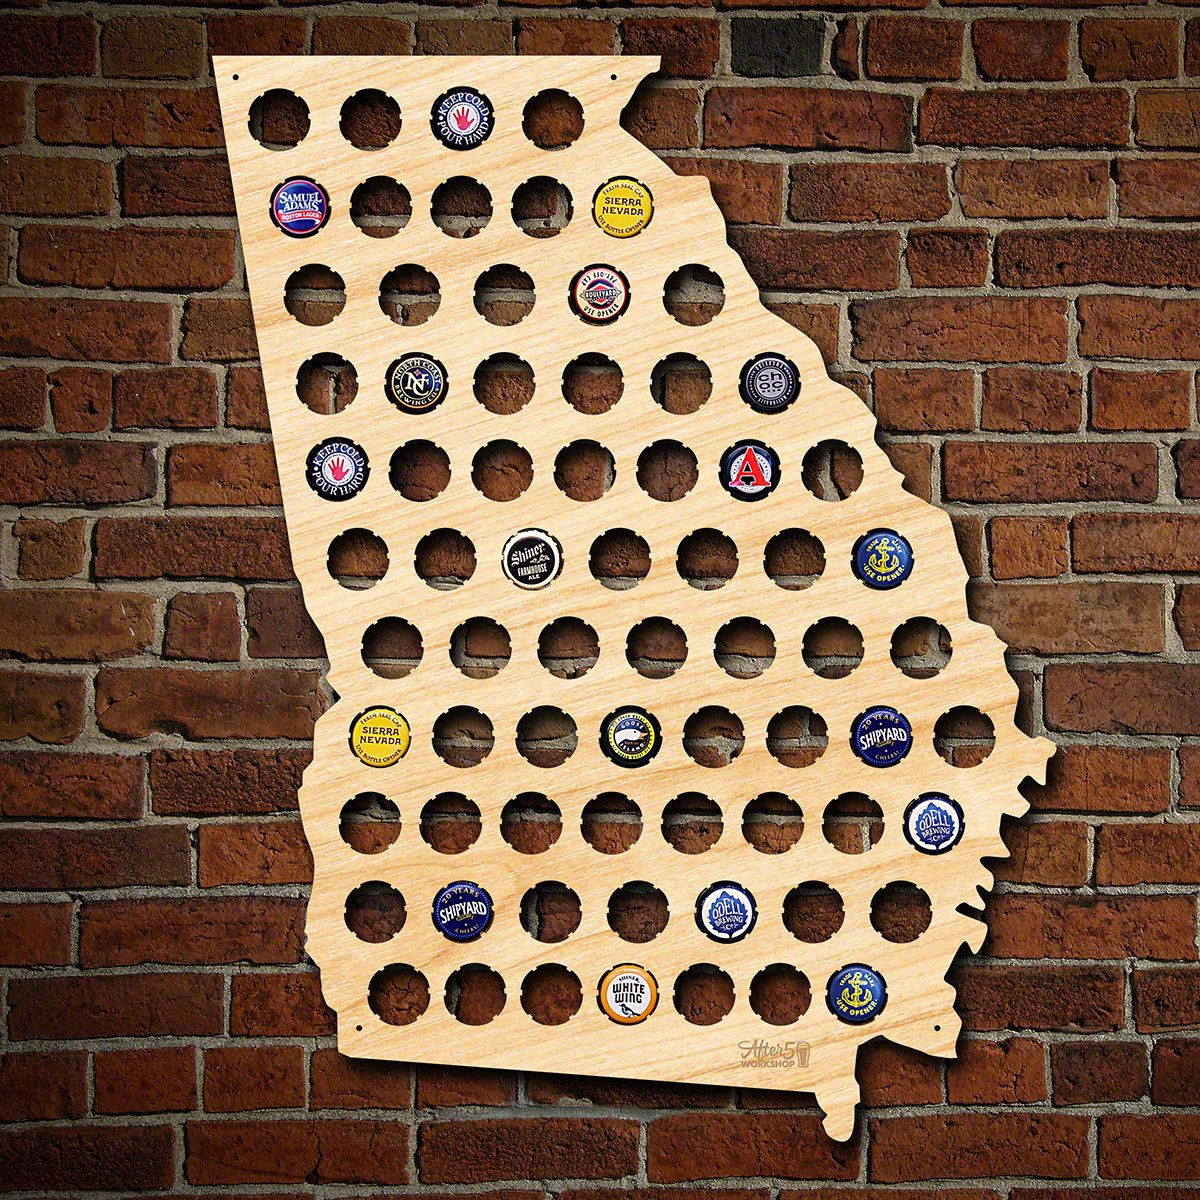 Georgia Beer Cap Map - Florida Beer Cap Map